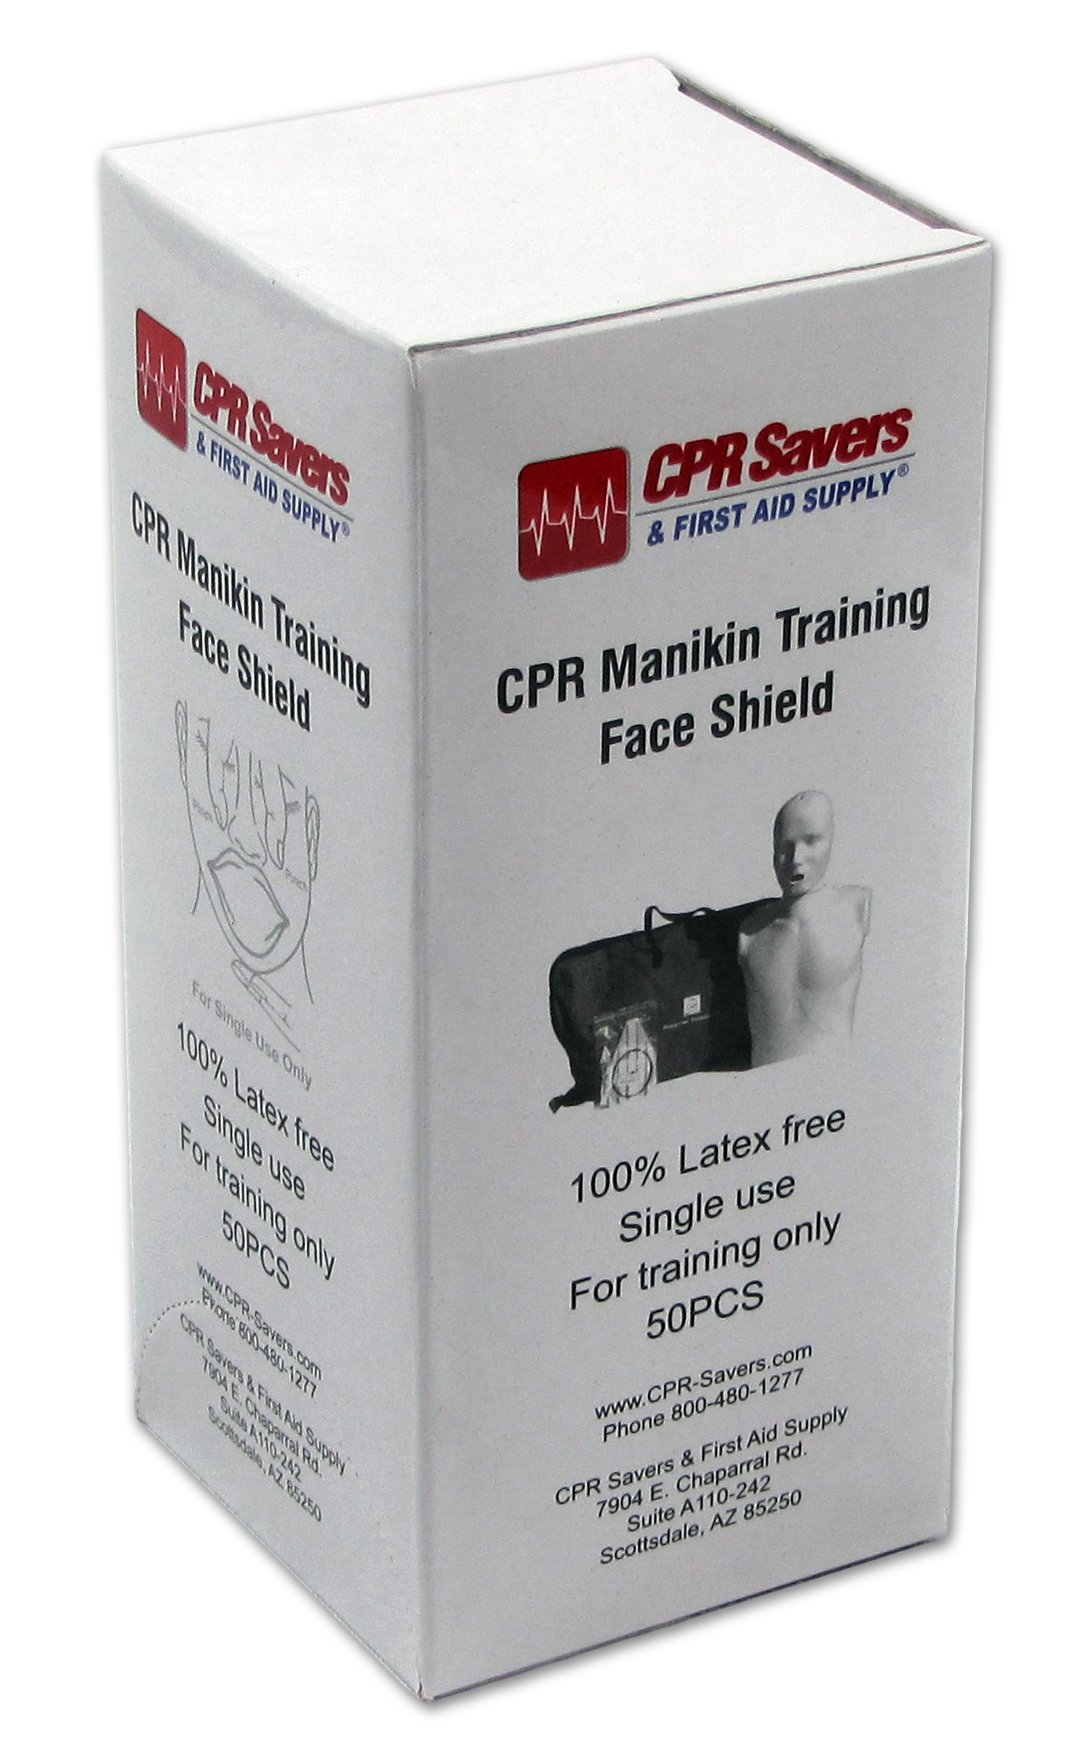 CPR Savers & First Aid Supply 3150A Practice Manikin Face Shields